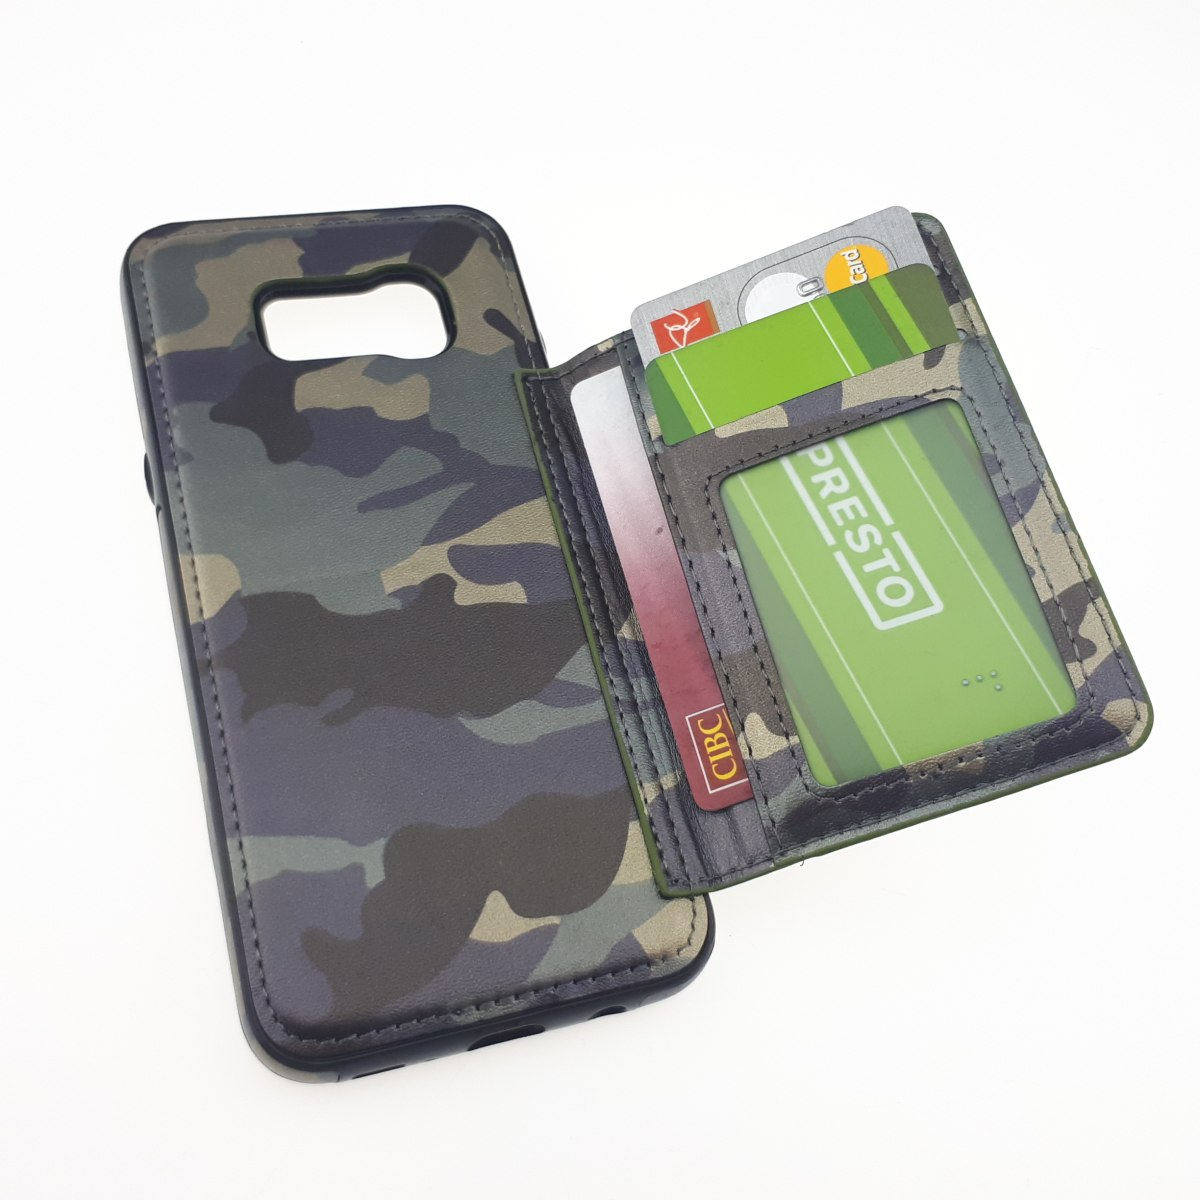 Goospery Canvas Diary Samsung Galaxy S8 Plus Case Gray Tni Camo Leather With Credit Card Holder For